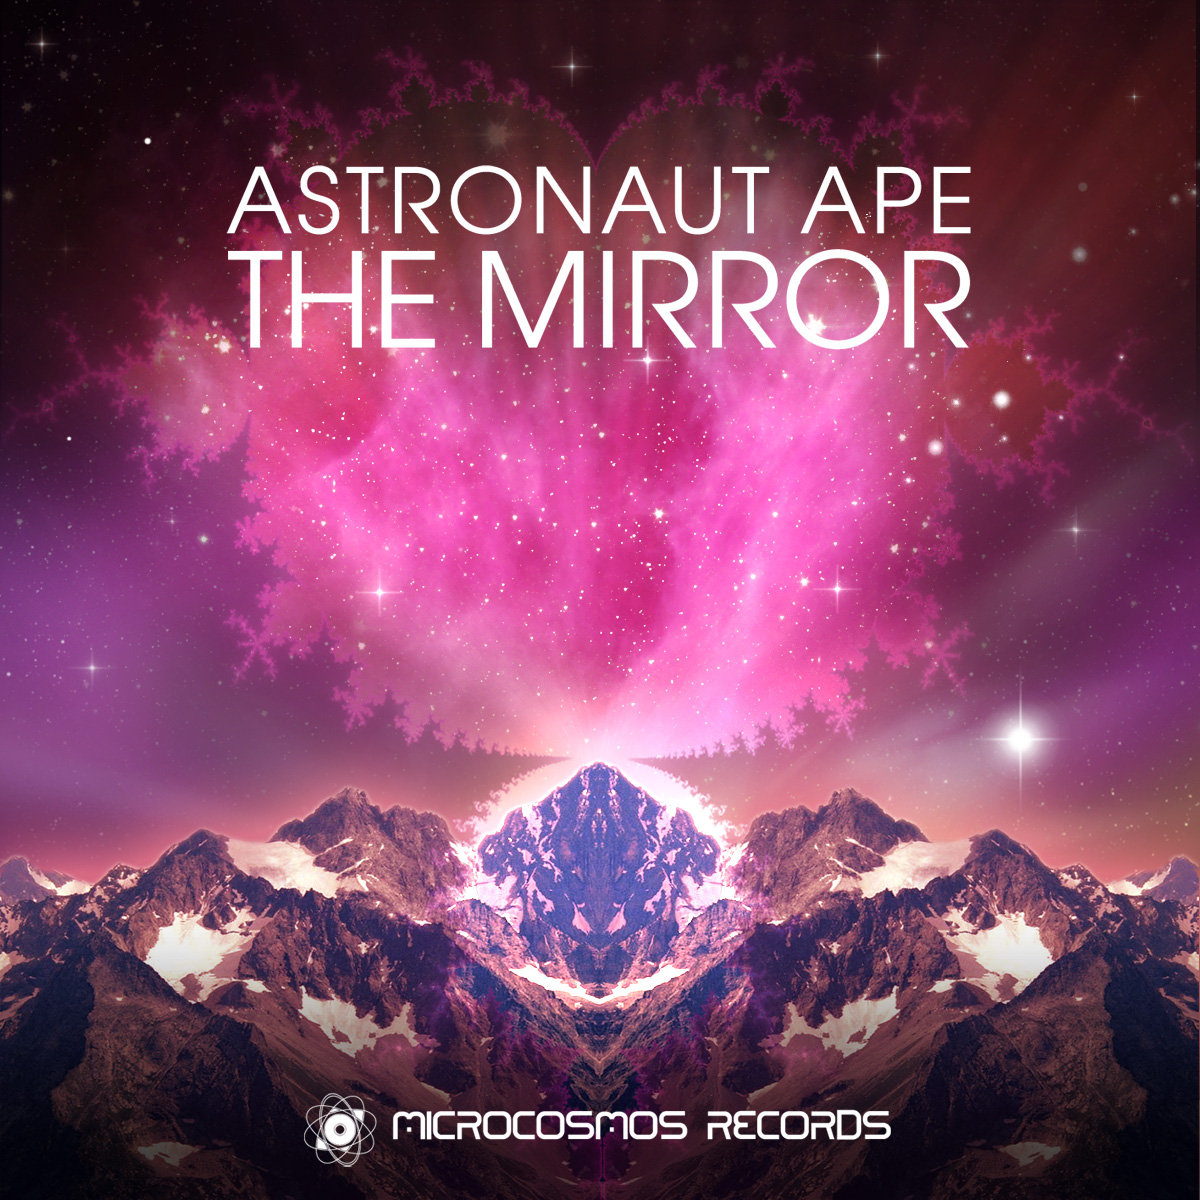 Astronaut Ape - Mirroreality @ 'The Mirror' album (ambient, chill-out)